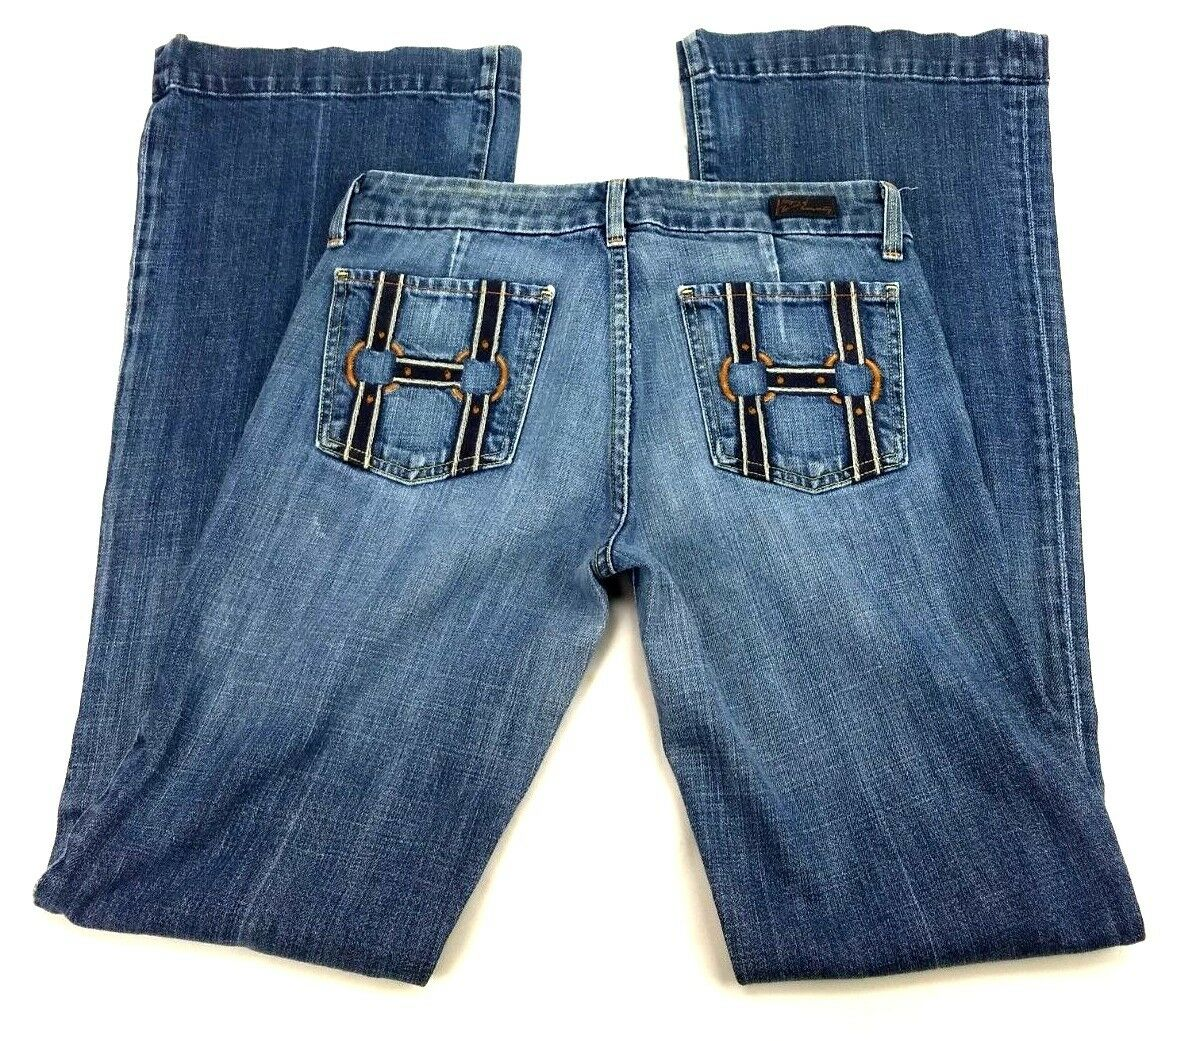 Citizens of Humanity Women 28 Jeans bluee USA Faye 184 Low Waist Flare Stretch AQ